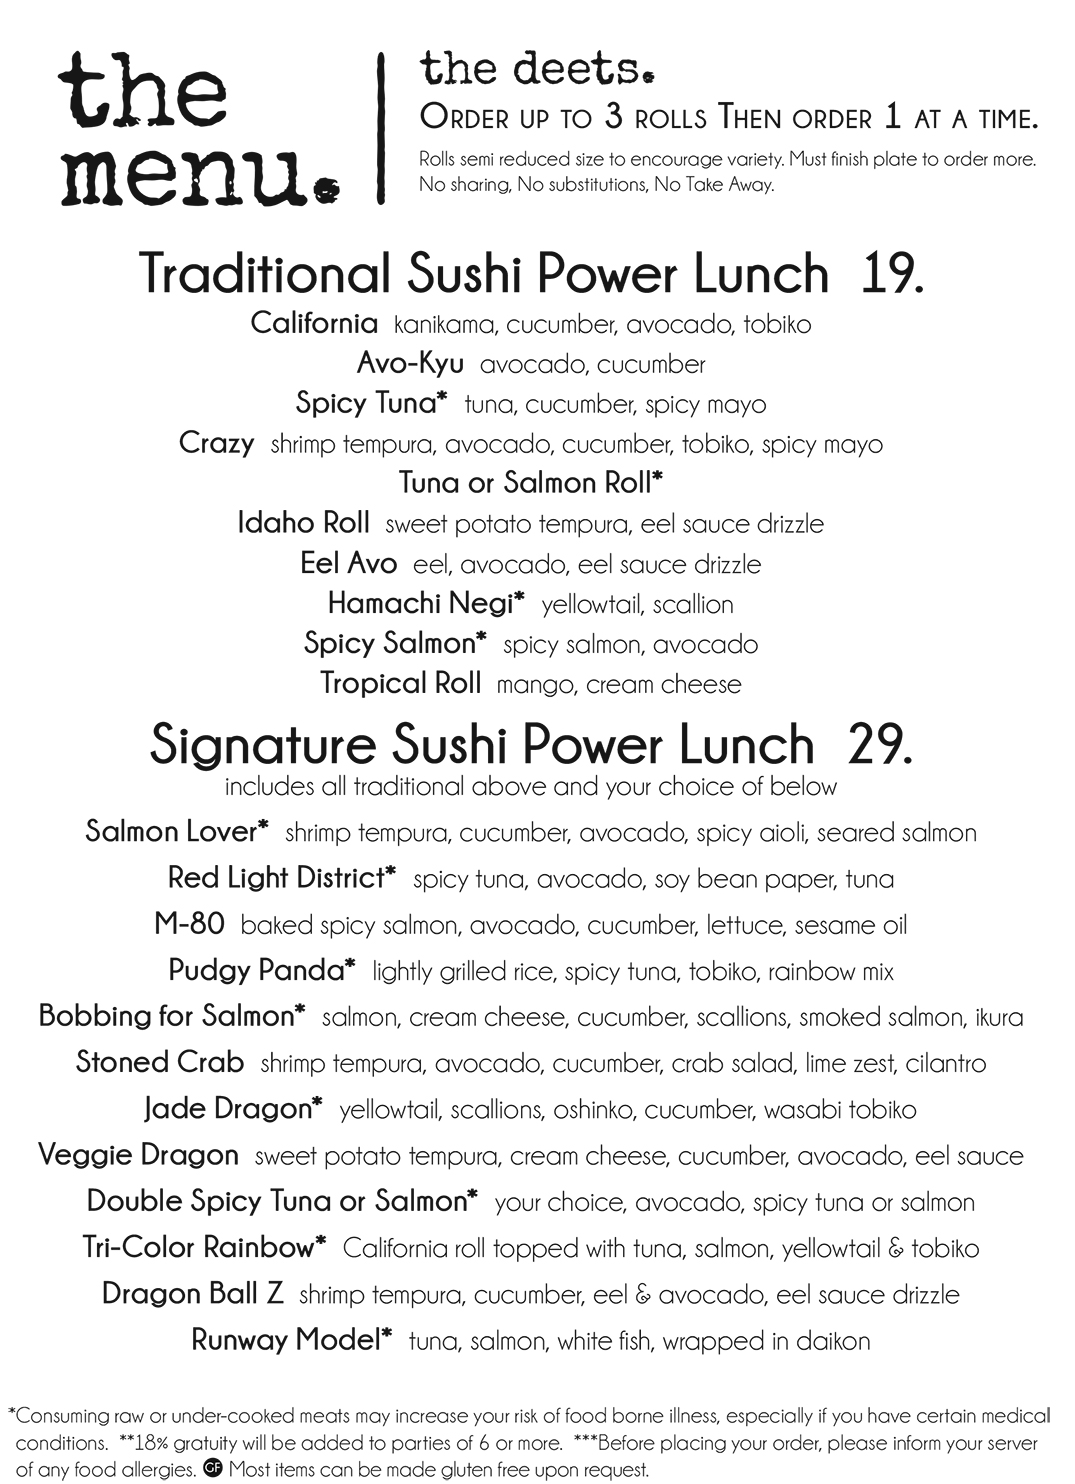 Sushi Power Lunch